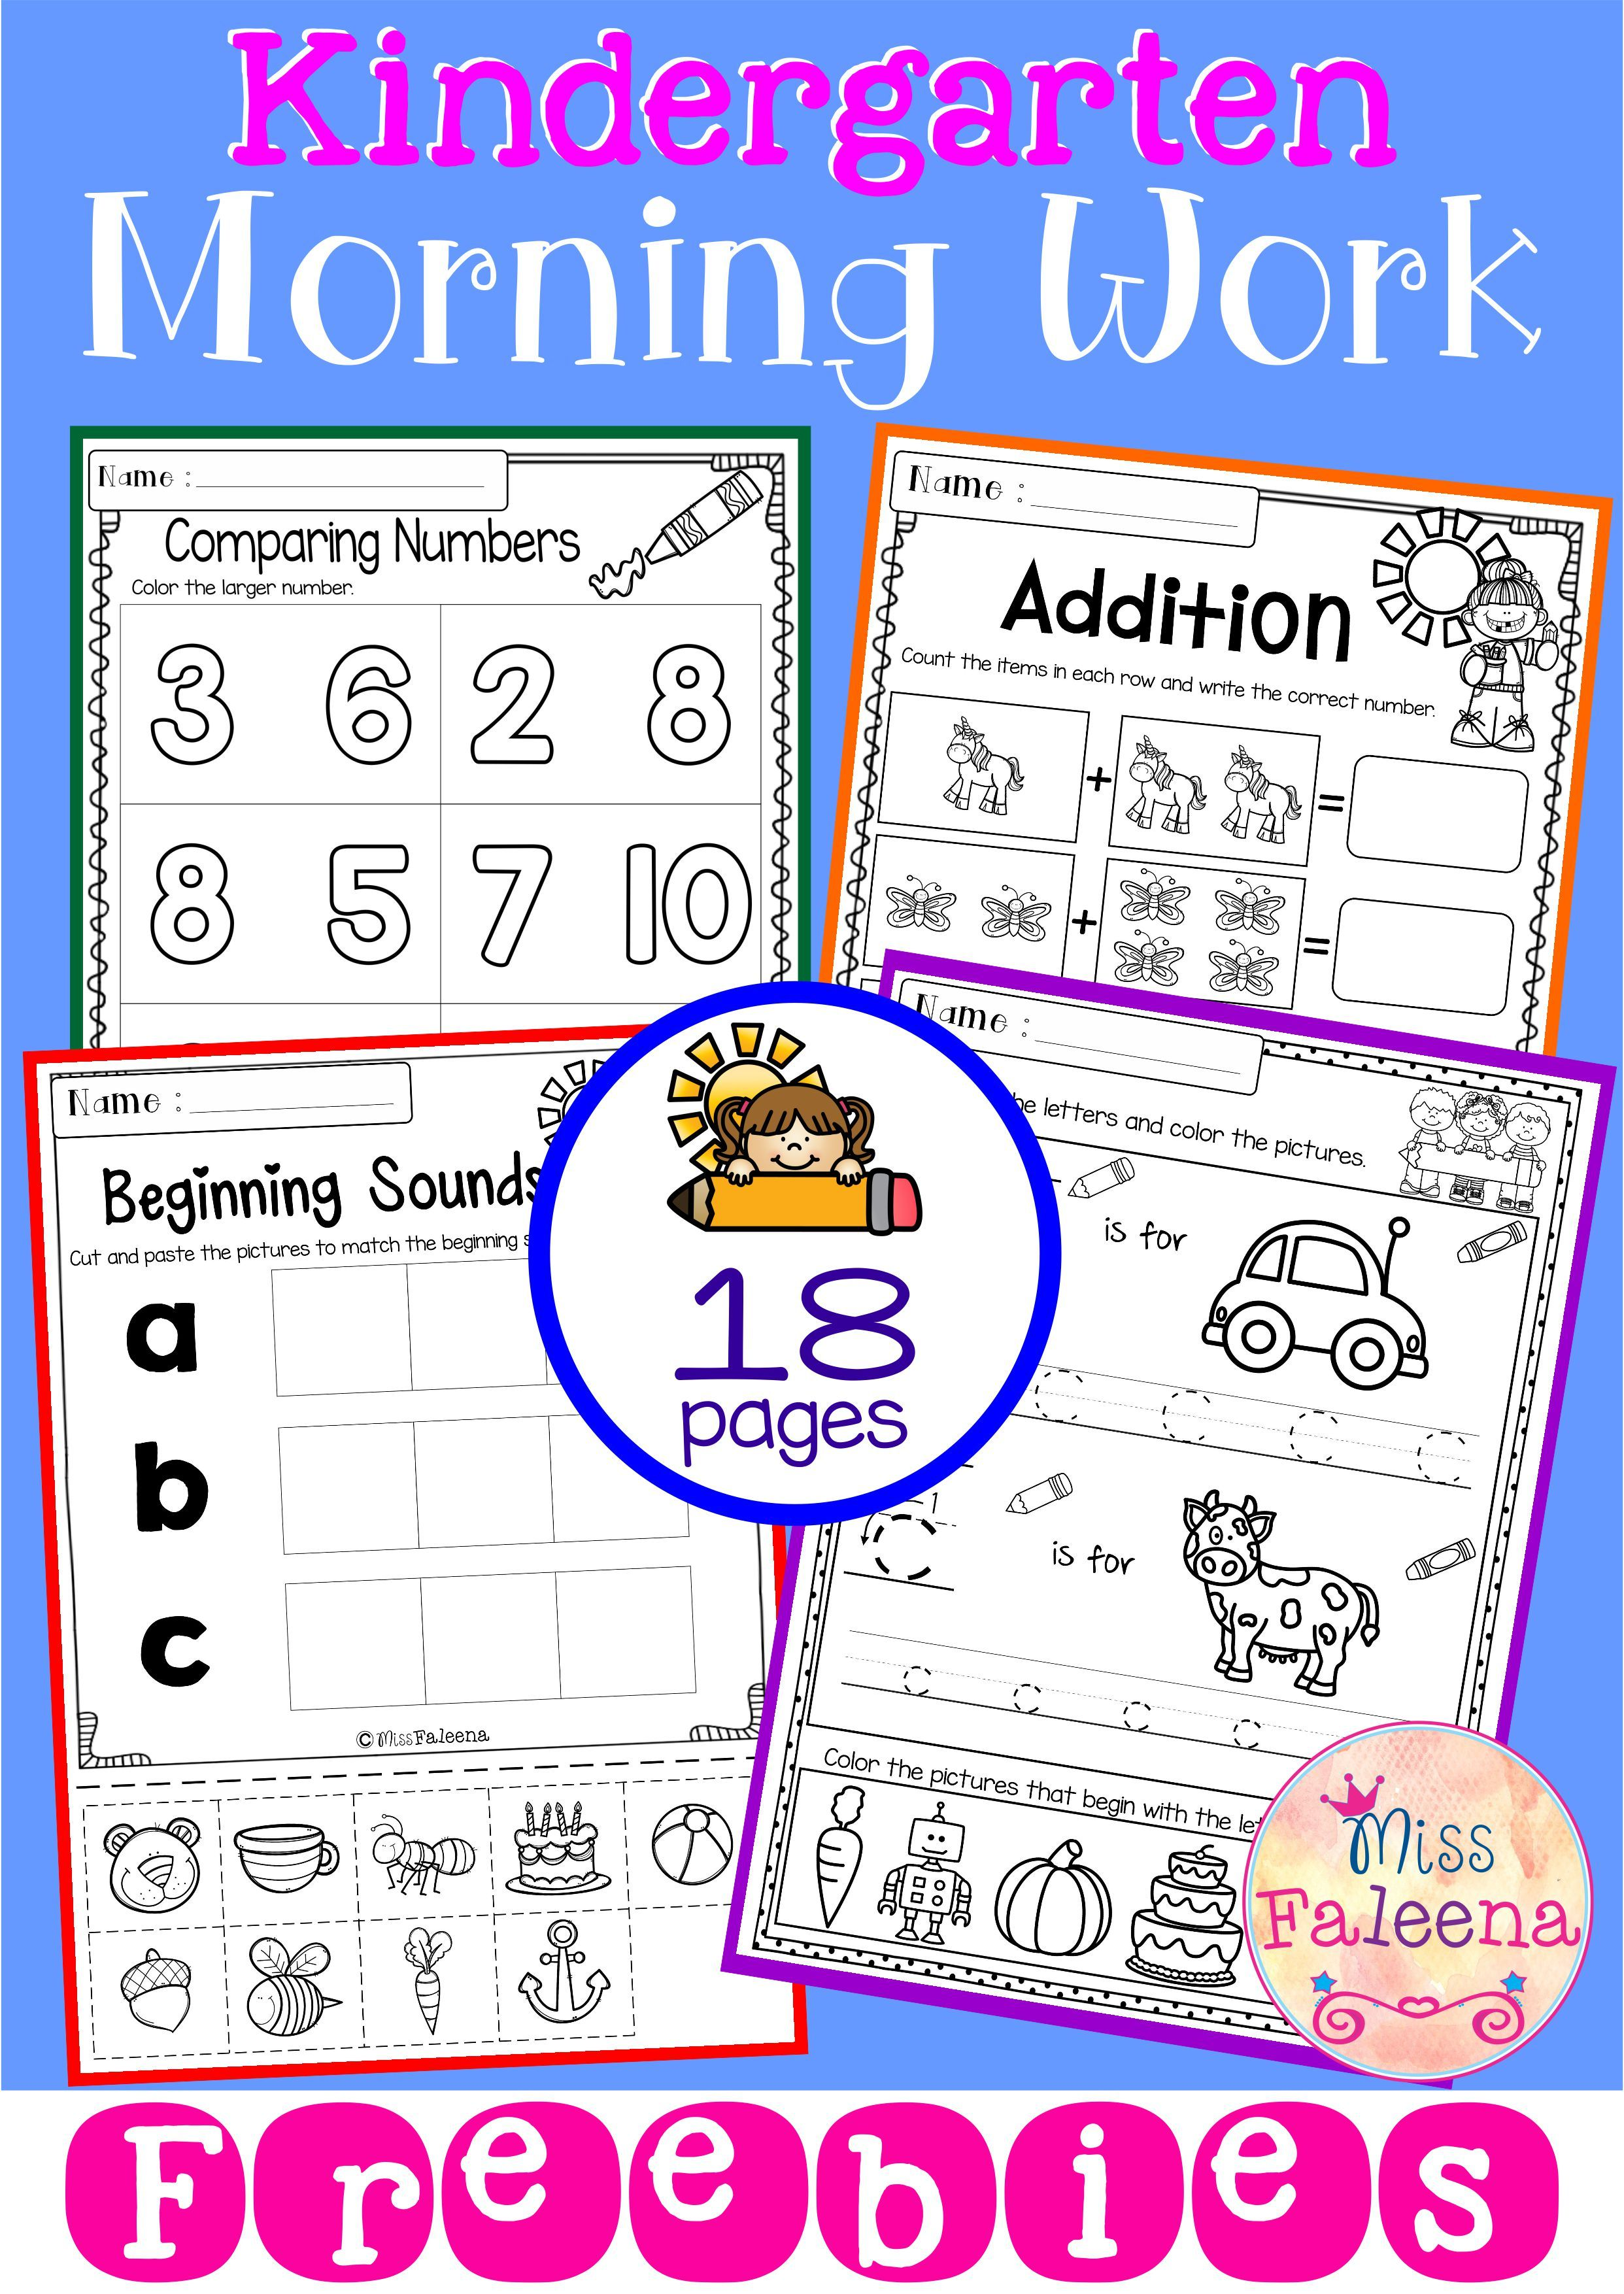 Free Kindergarten Morning Work Includes 18 Worksheet Pages These Pages Are Great For Pr Kindergarten Morning Work Morning Work Kindergarten Free Morning Work [ 3509 x 2484 Pixel ]